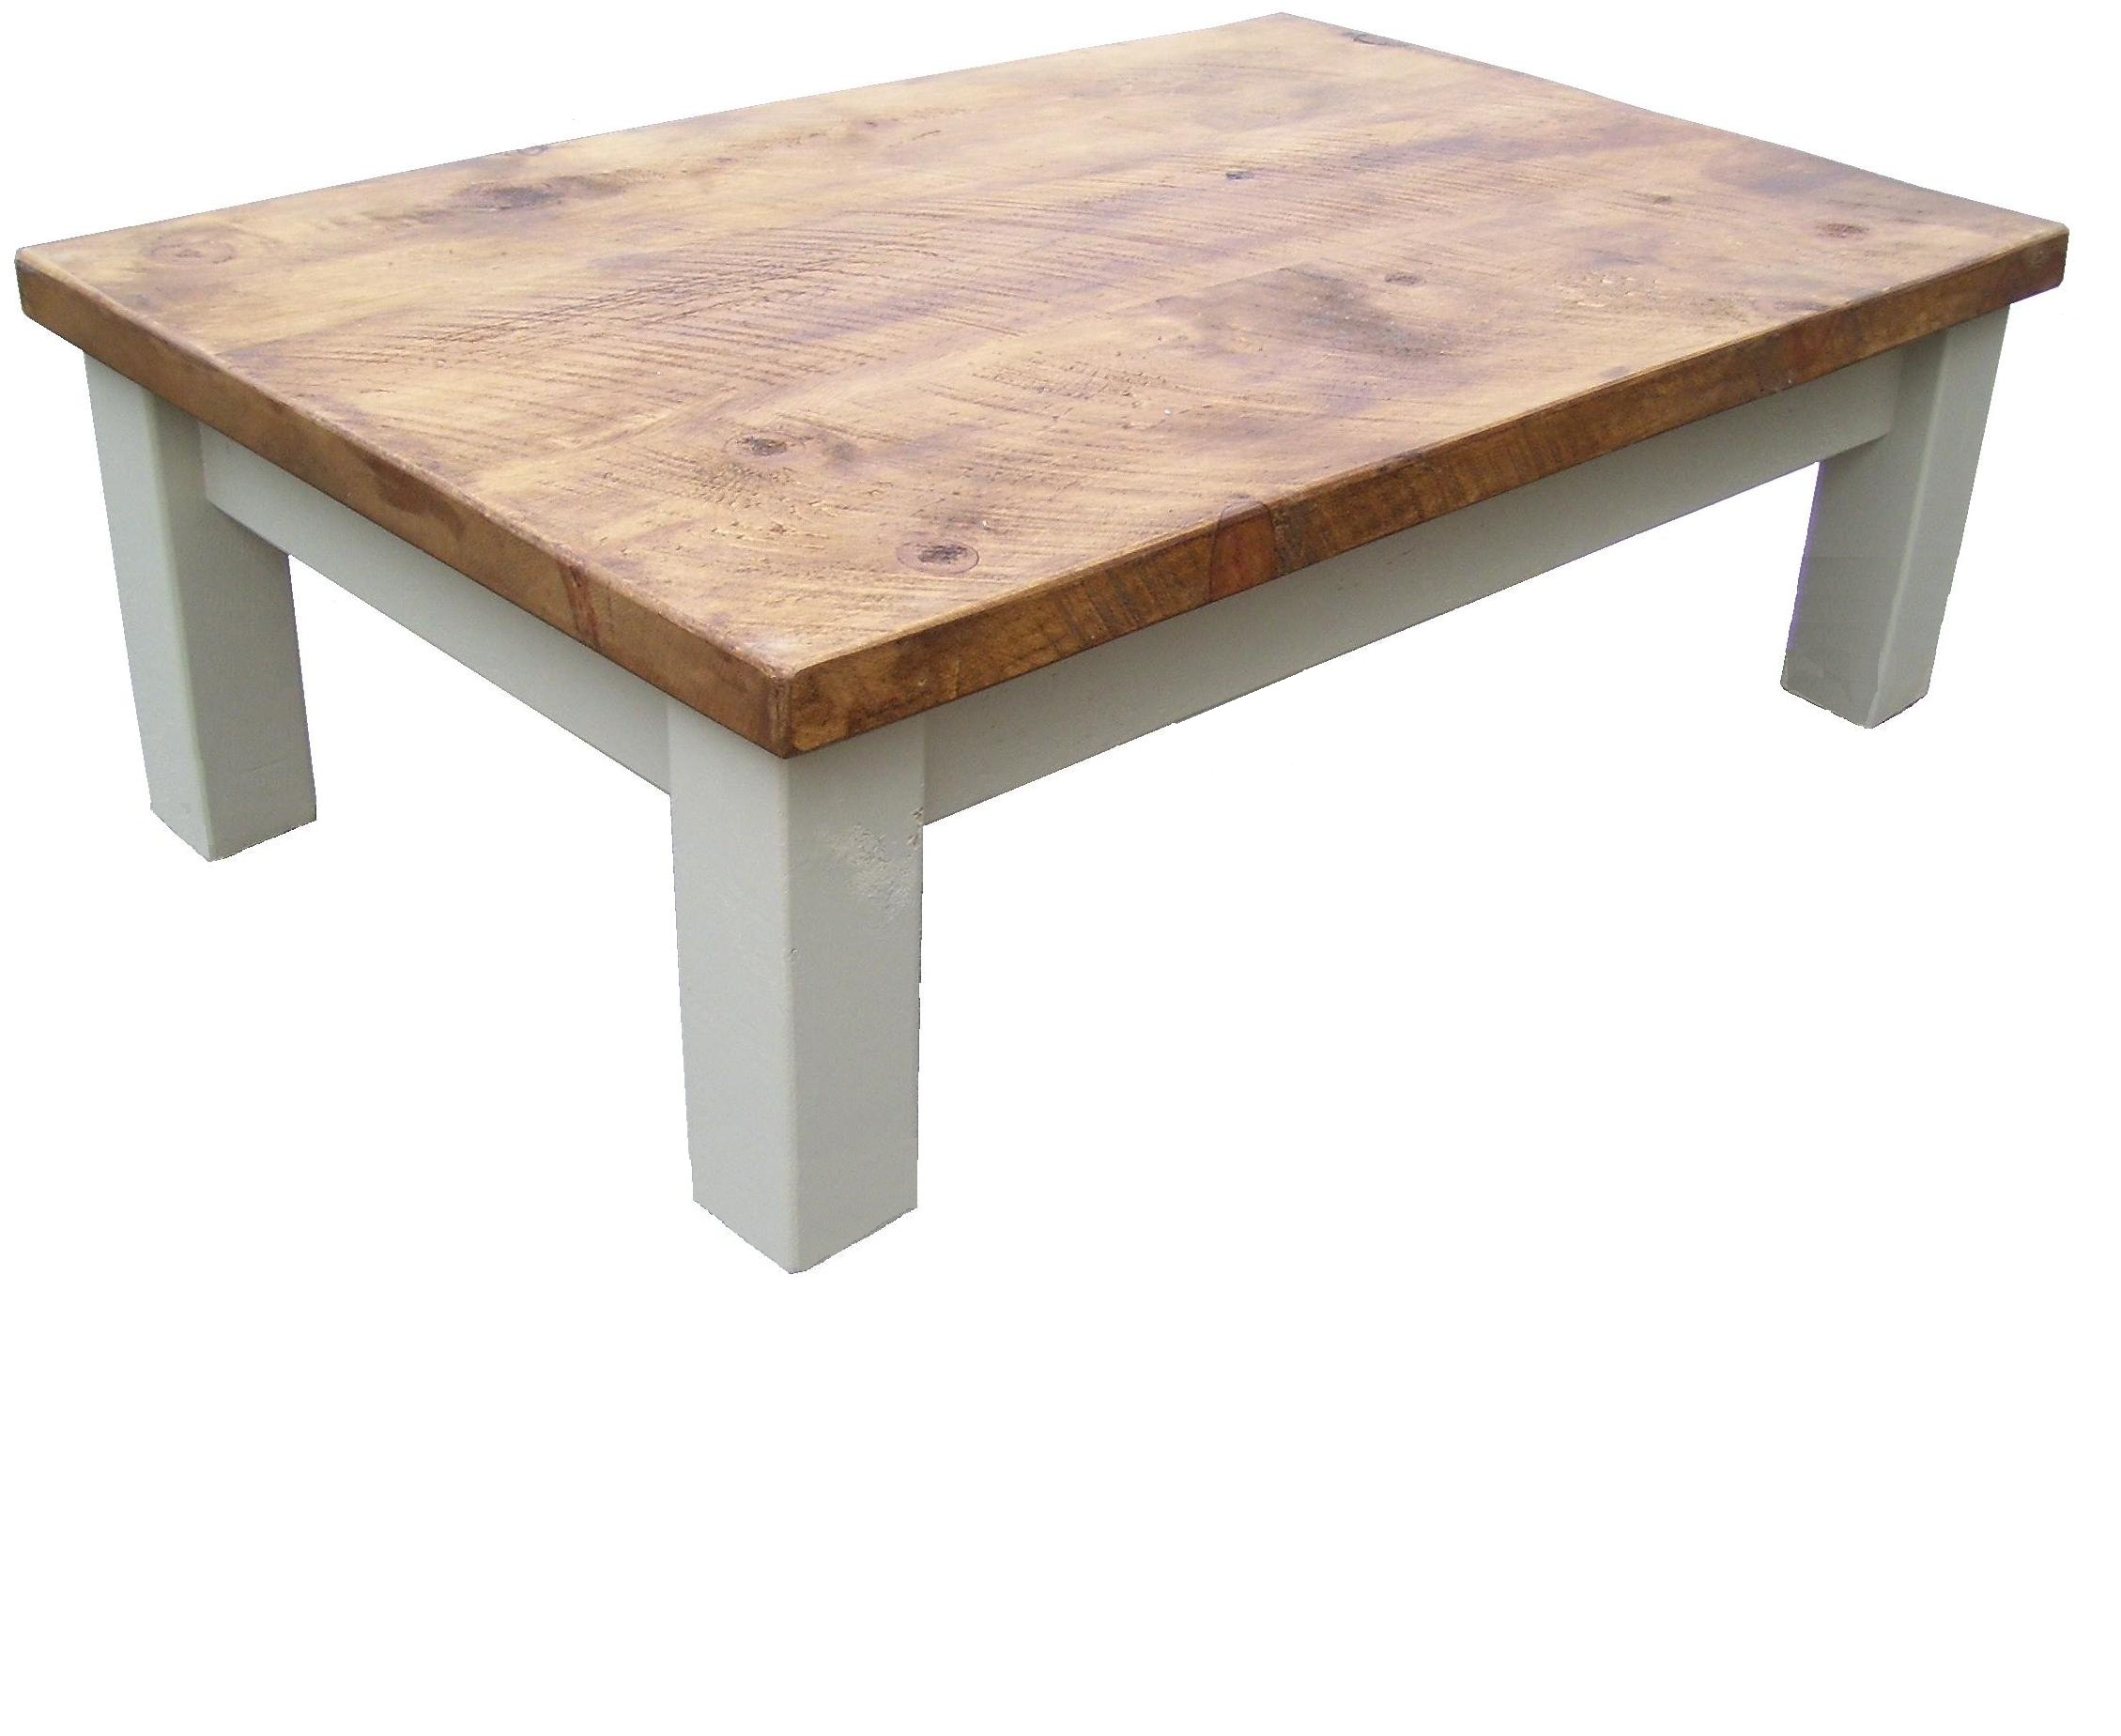 Rustic Coffee Table.Painted Rustic Coffee Table